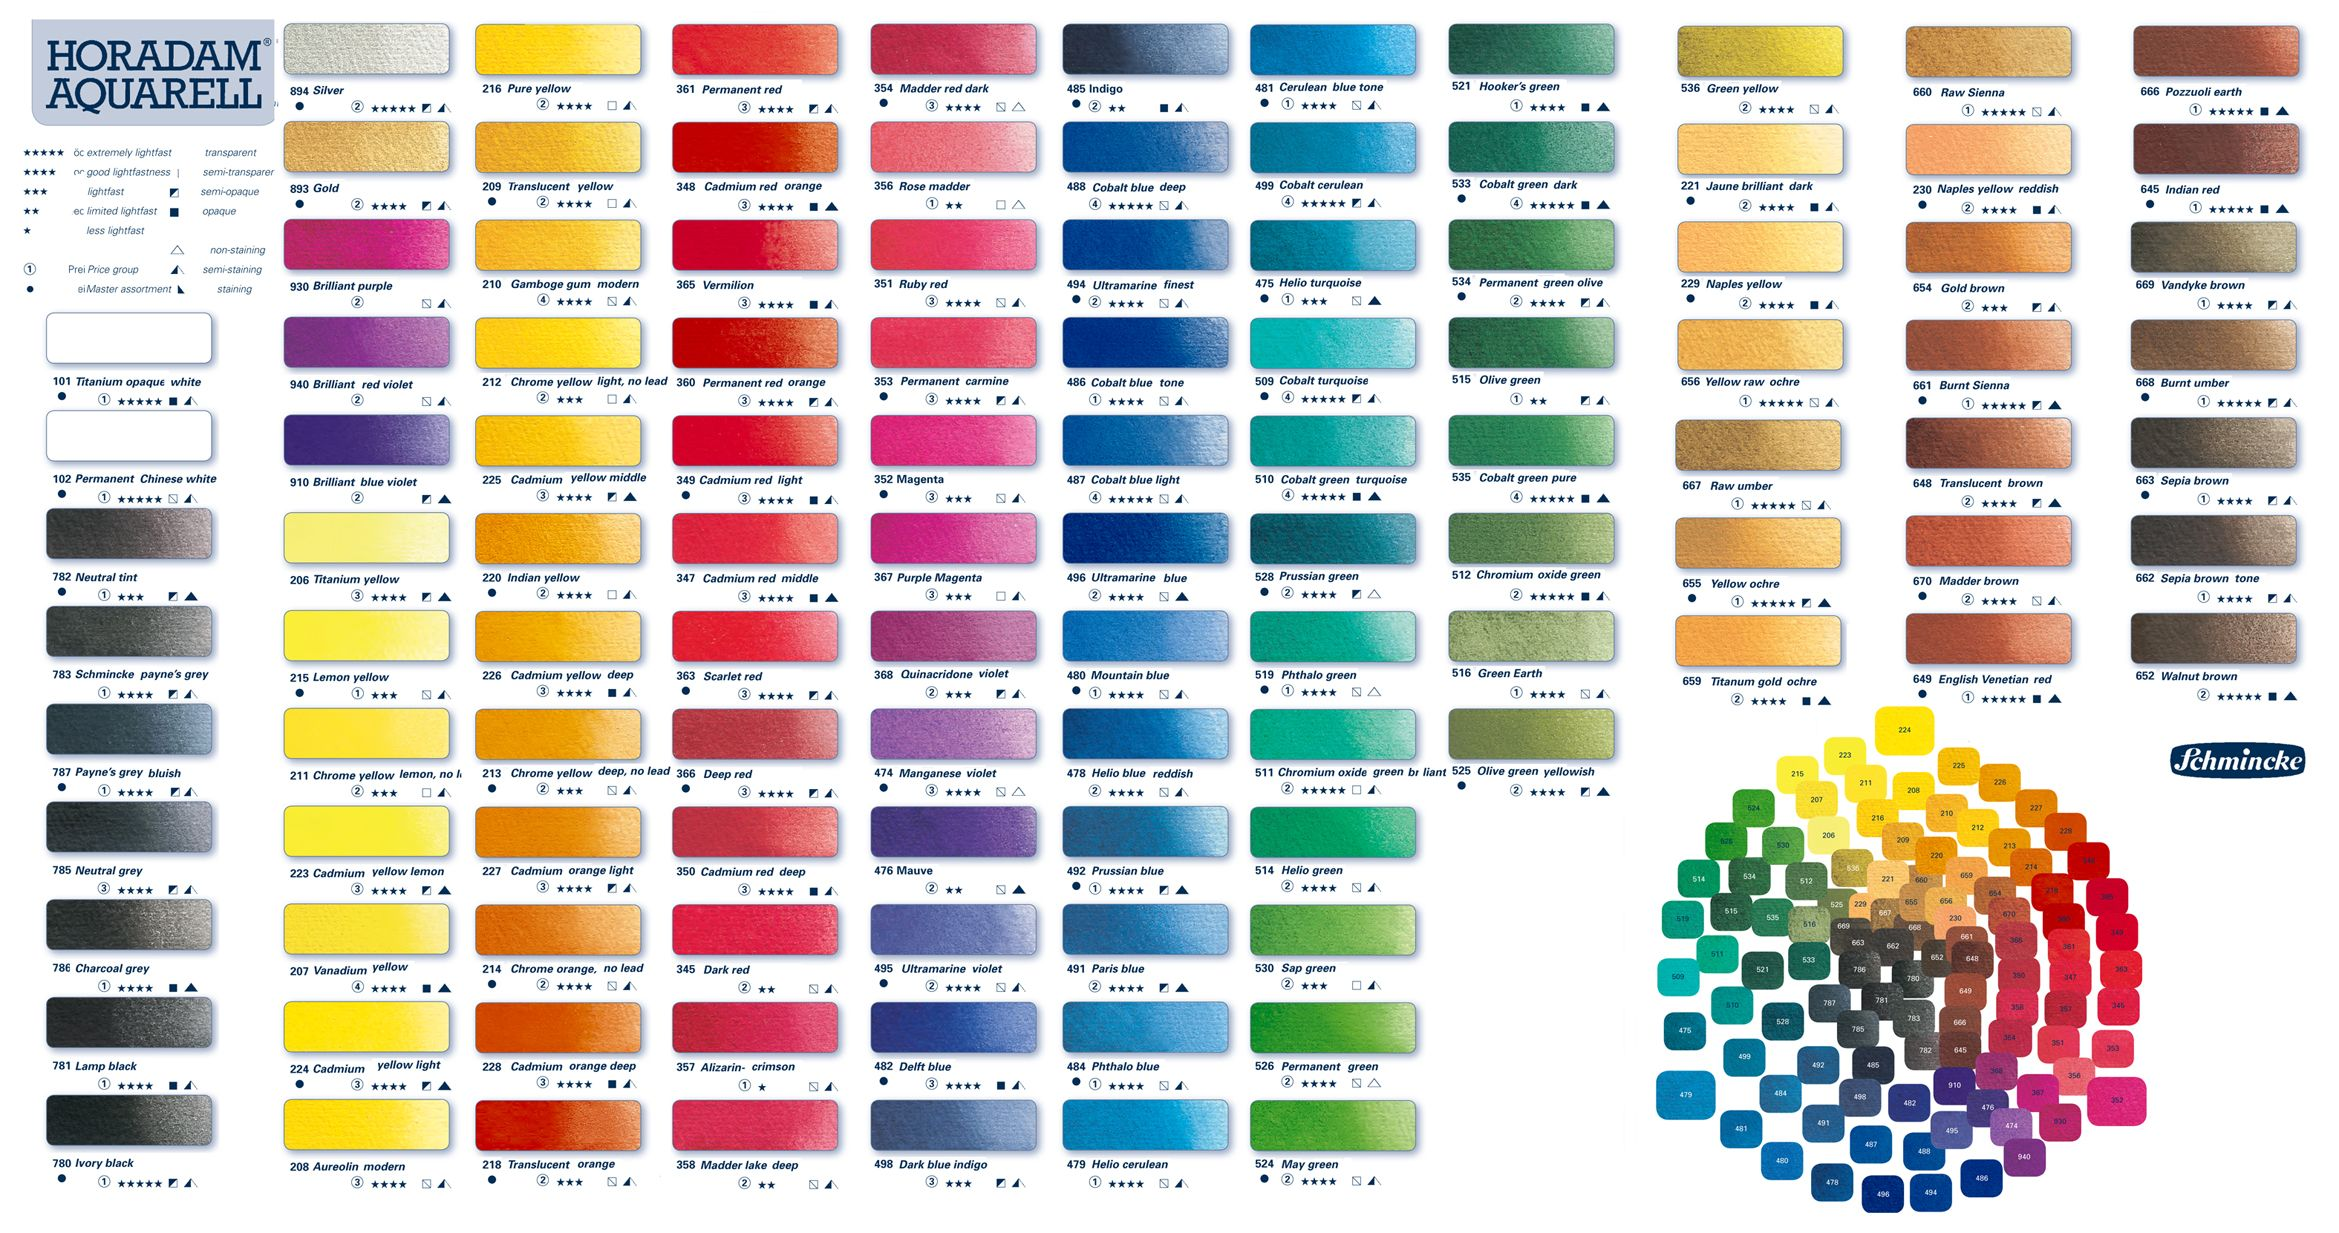 Schmincke Horadam Watercolour Paint Colour Chart From Broad Canvas